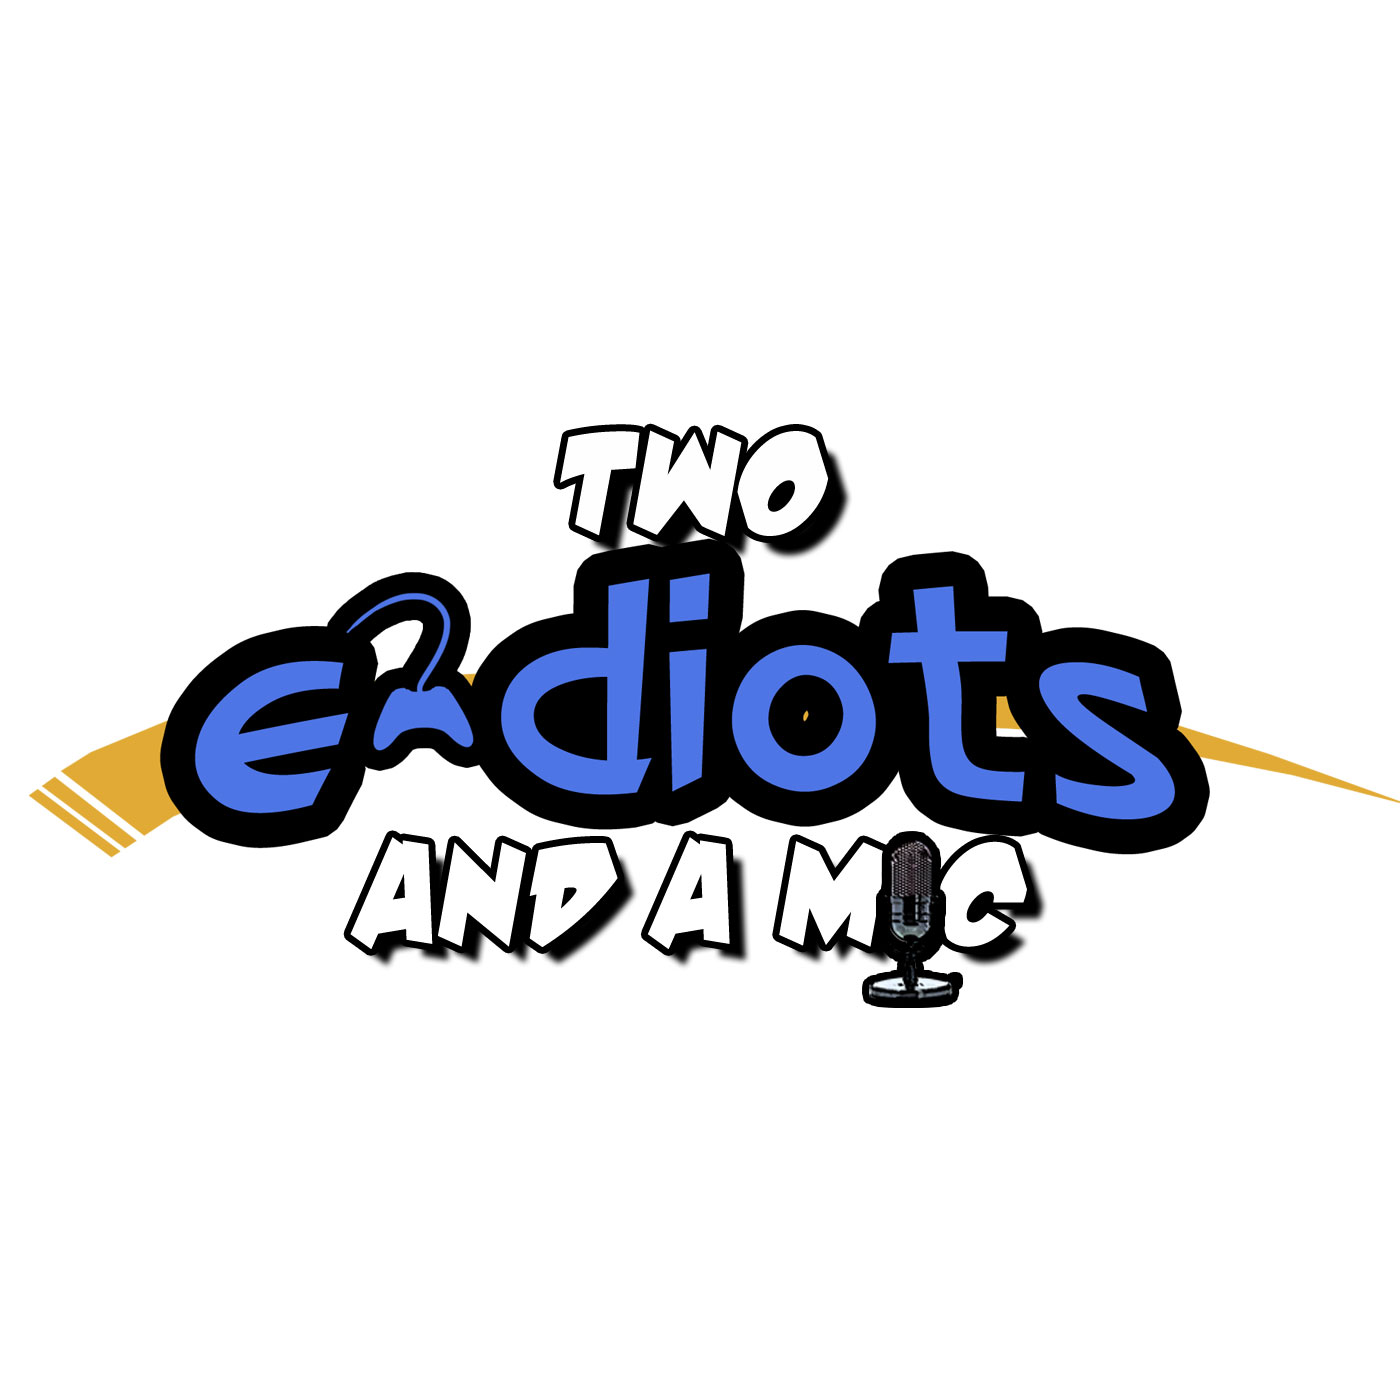 Two e-diots and a Mic